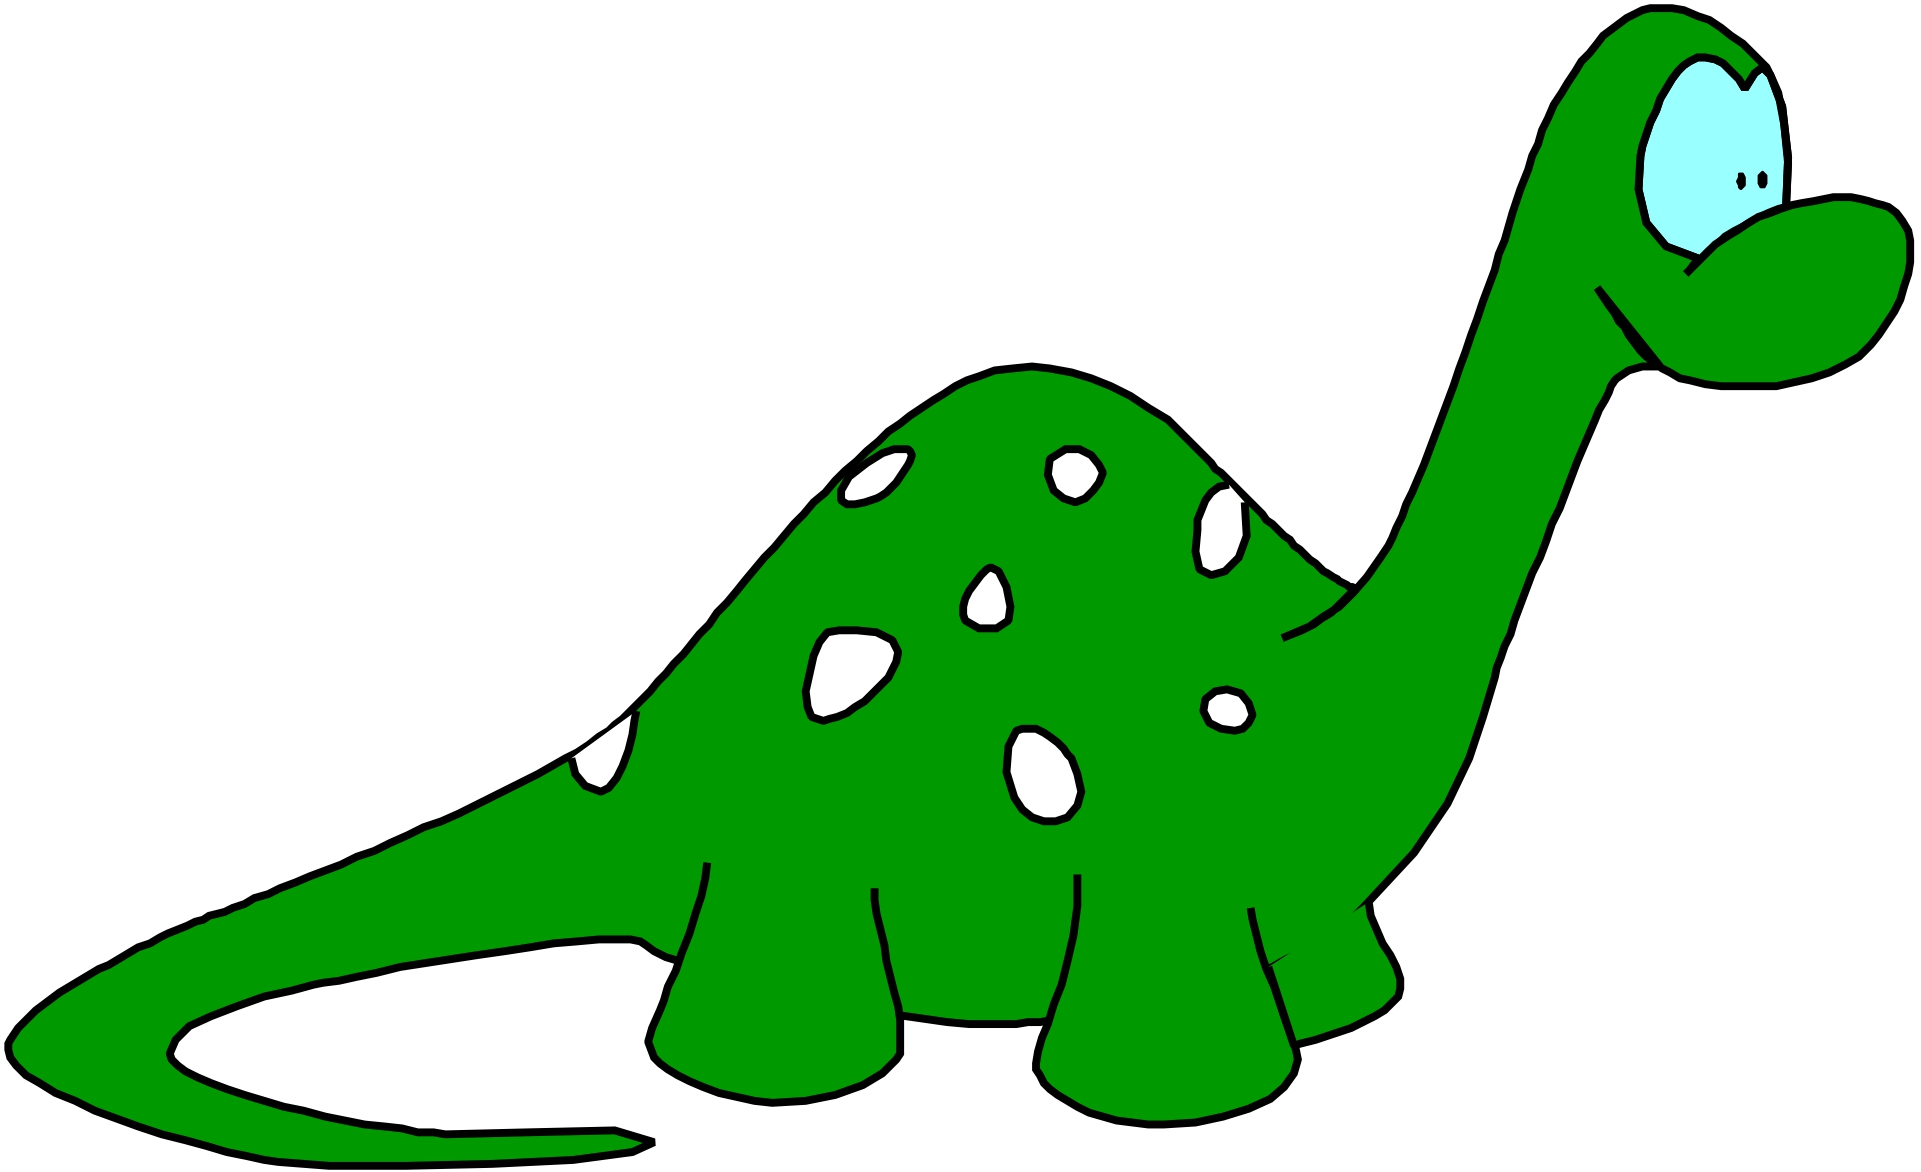 Green dinosaur clipart image black and white library Free Cartoon Dinosaur Cliparts, Download Free Clip Art, Free Clip ... image black and white library